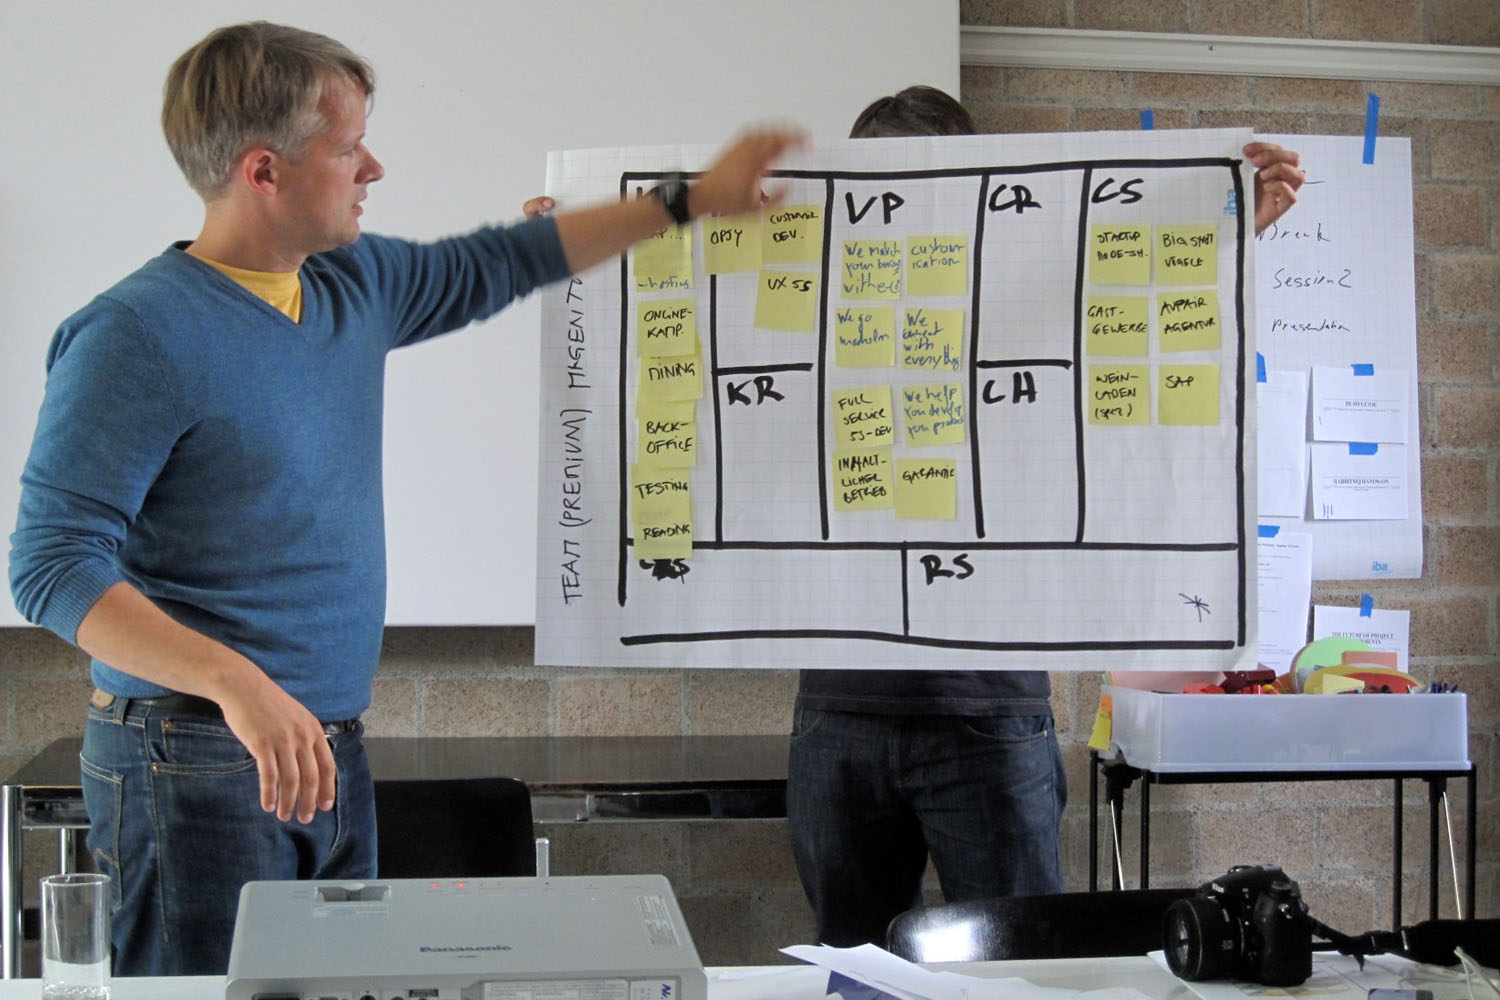 Building a business model (photo:flickr/visualpunch)